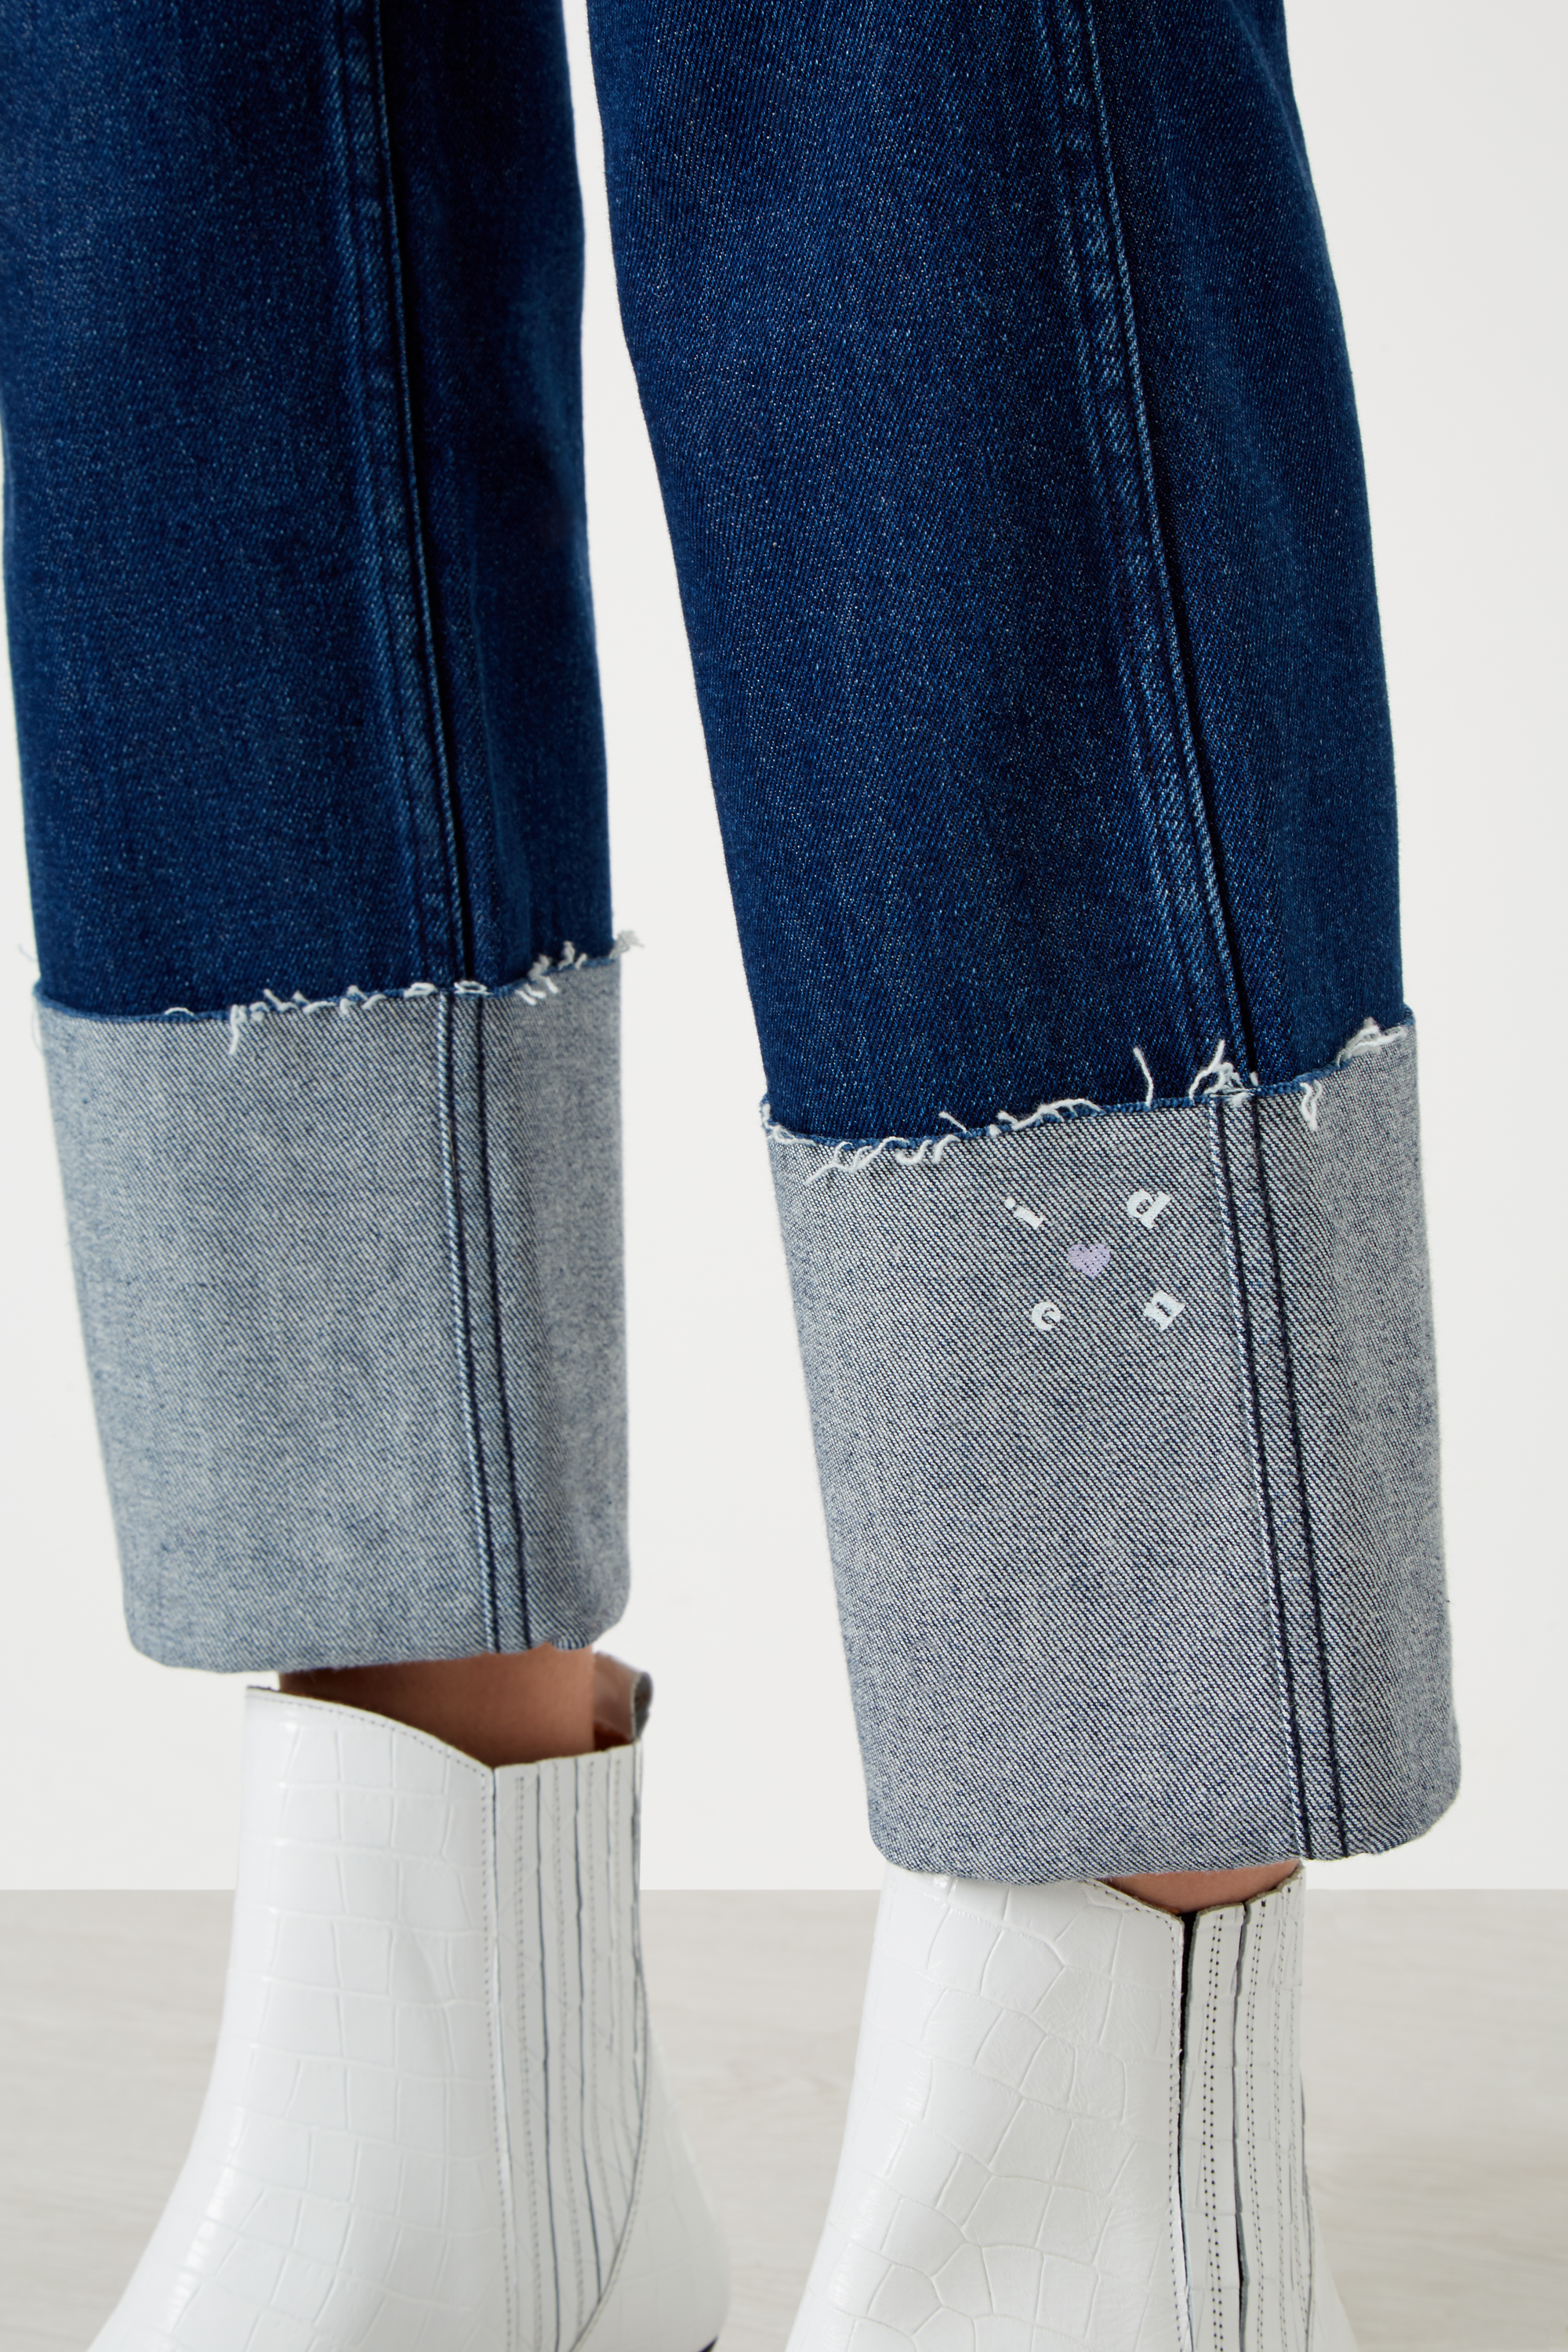 Straight Relaxed Maxi Turn-Up Organic Jeans £175